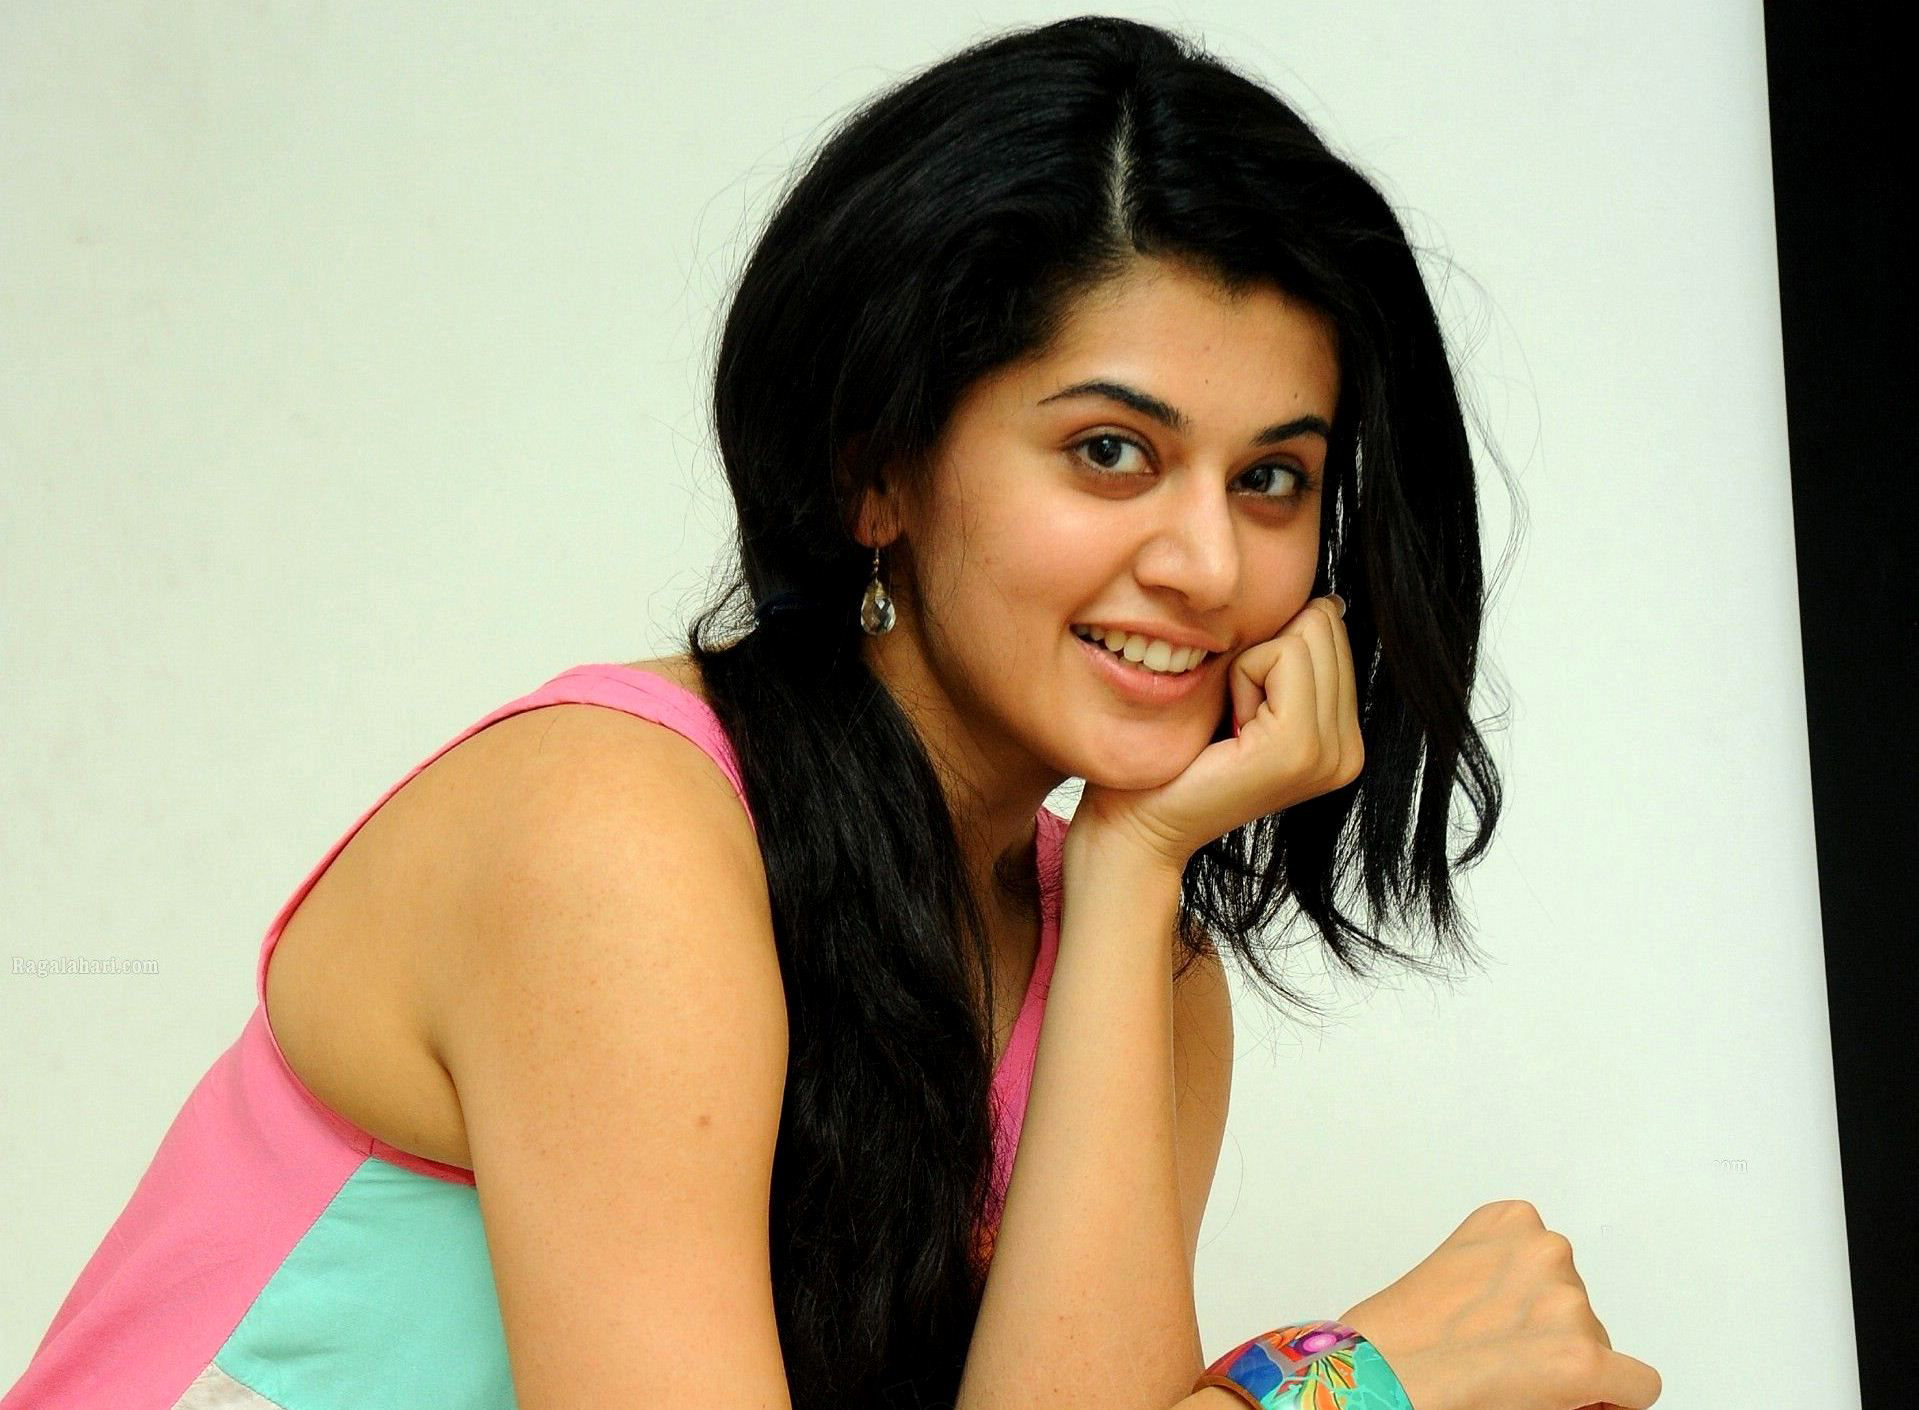 Beauty taapsee pannu hd wallpaper